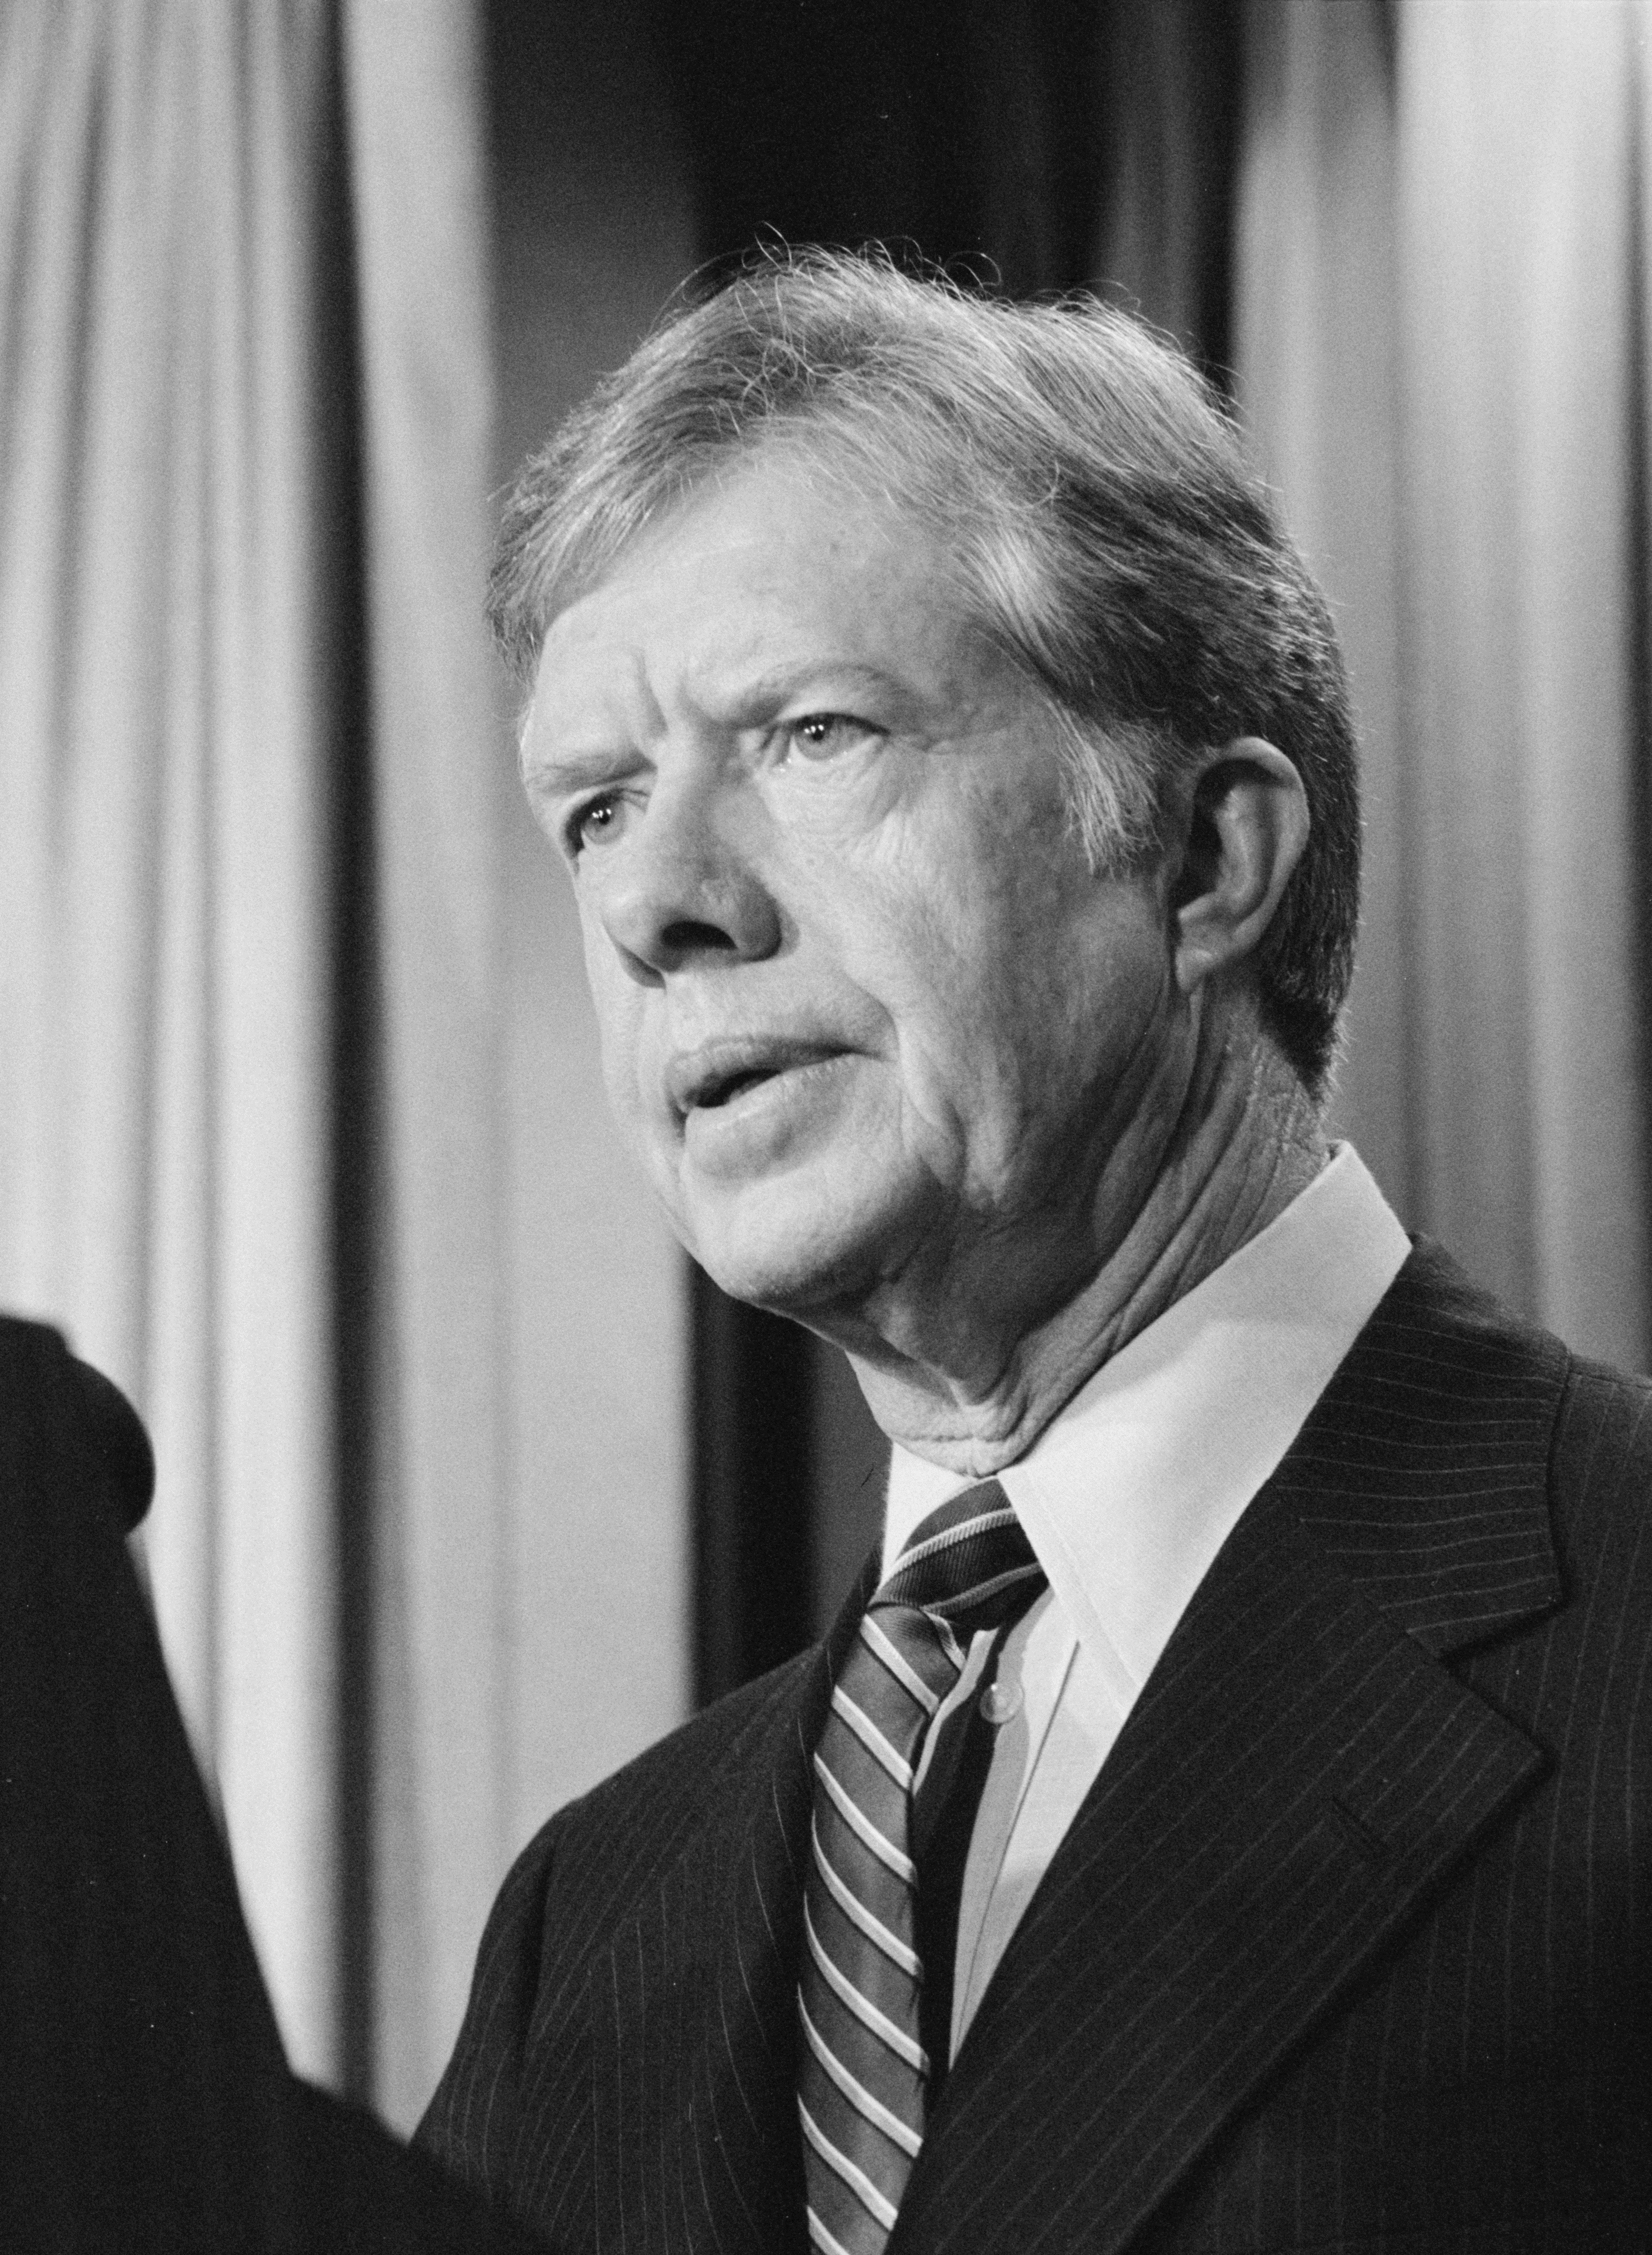 jimmy carter - photo #6